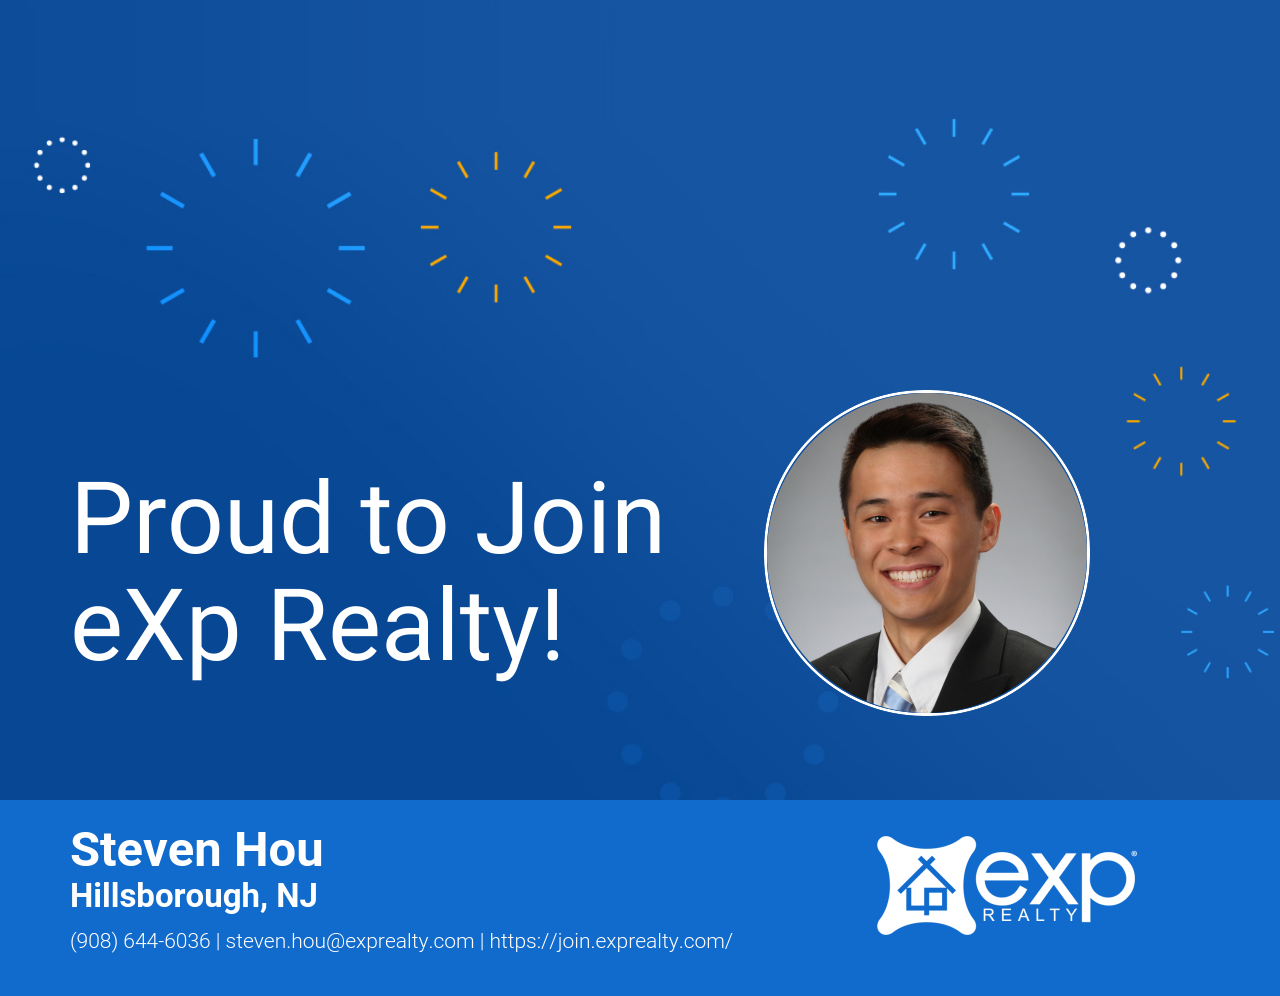 Steven Hou Joined eXp Realty!